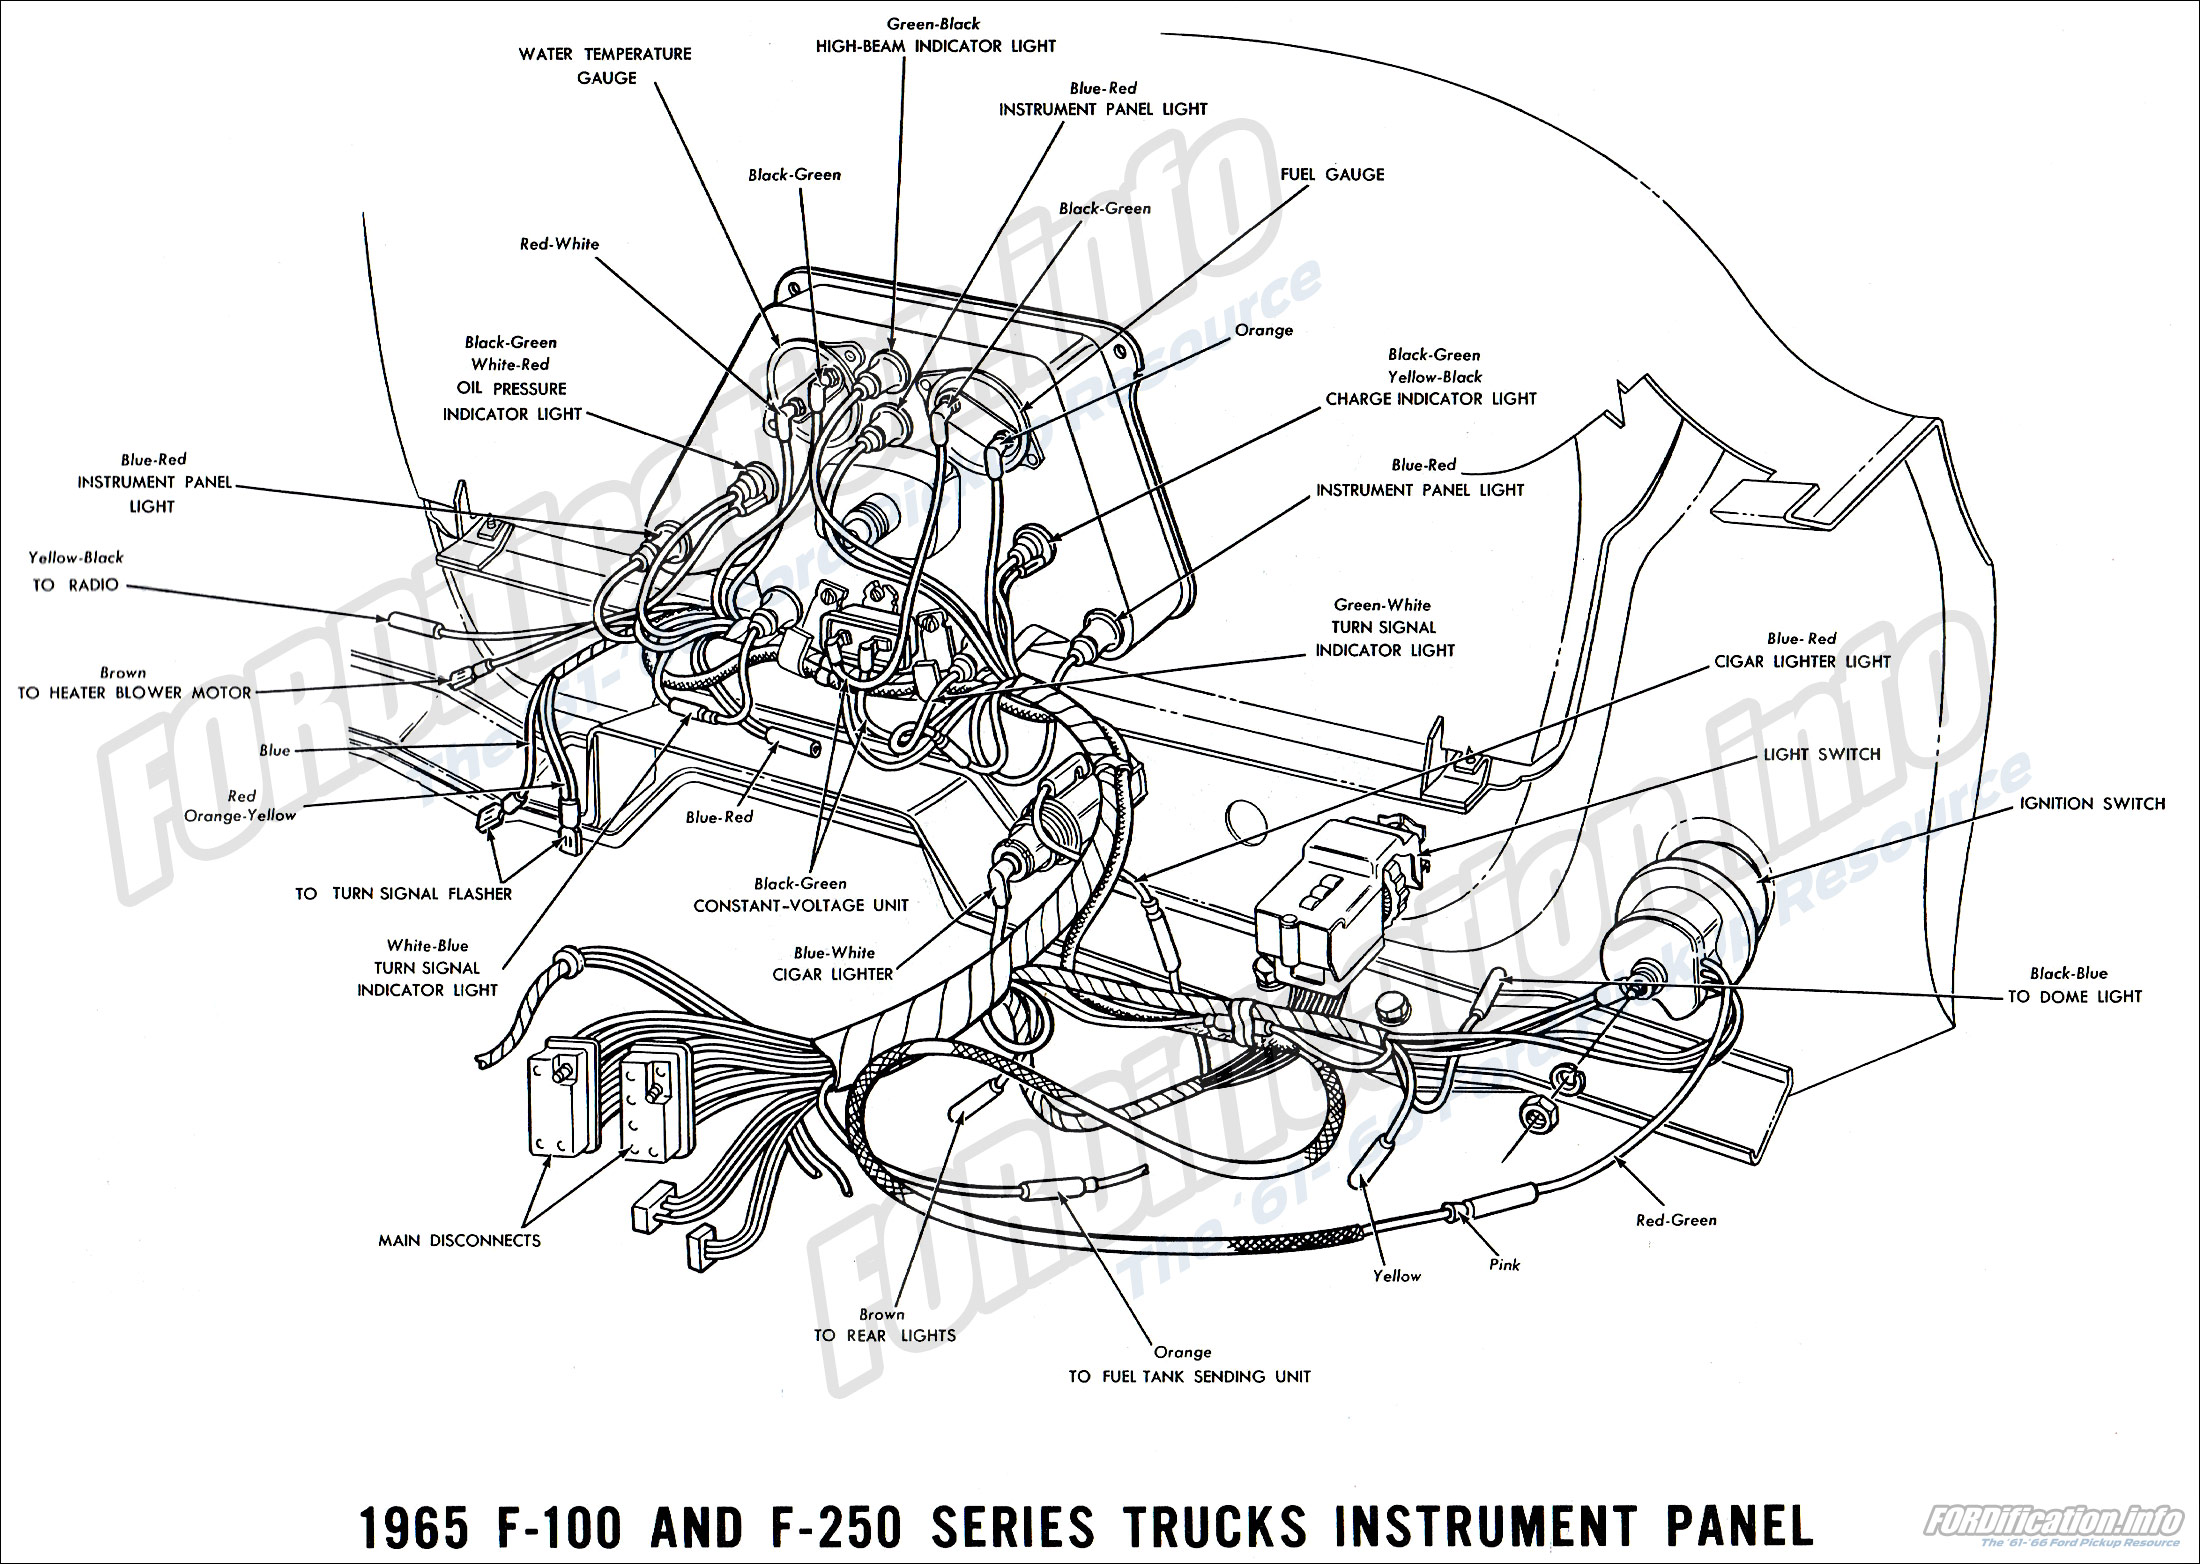 1965 Ford F100 Dash Wiring Diagram : 34 Wiring Diagram